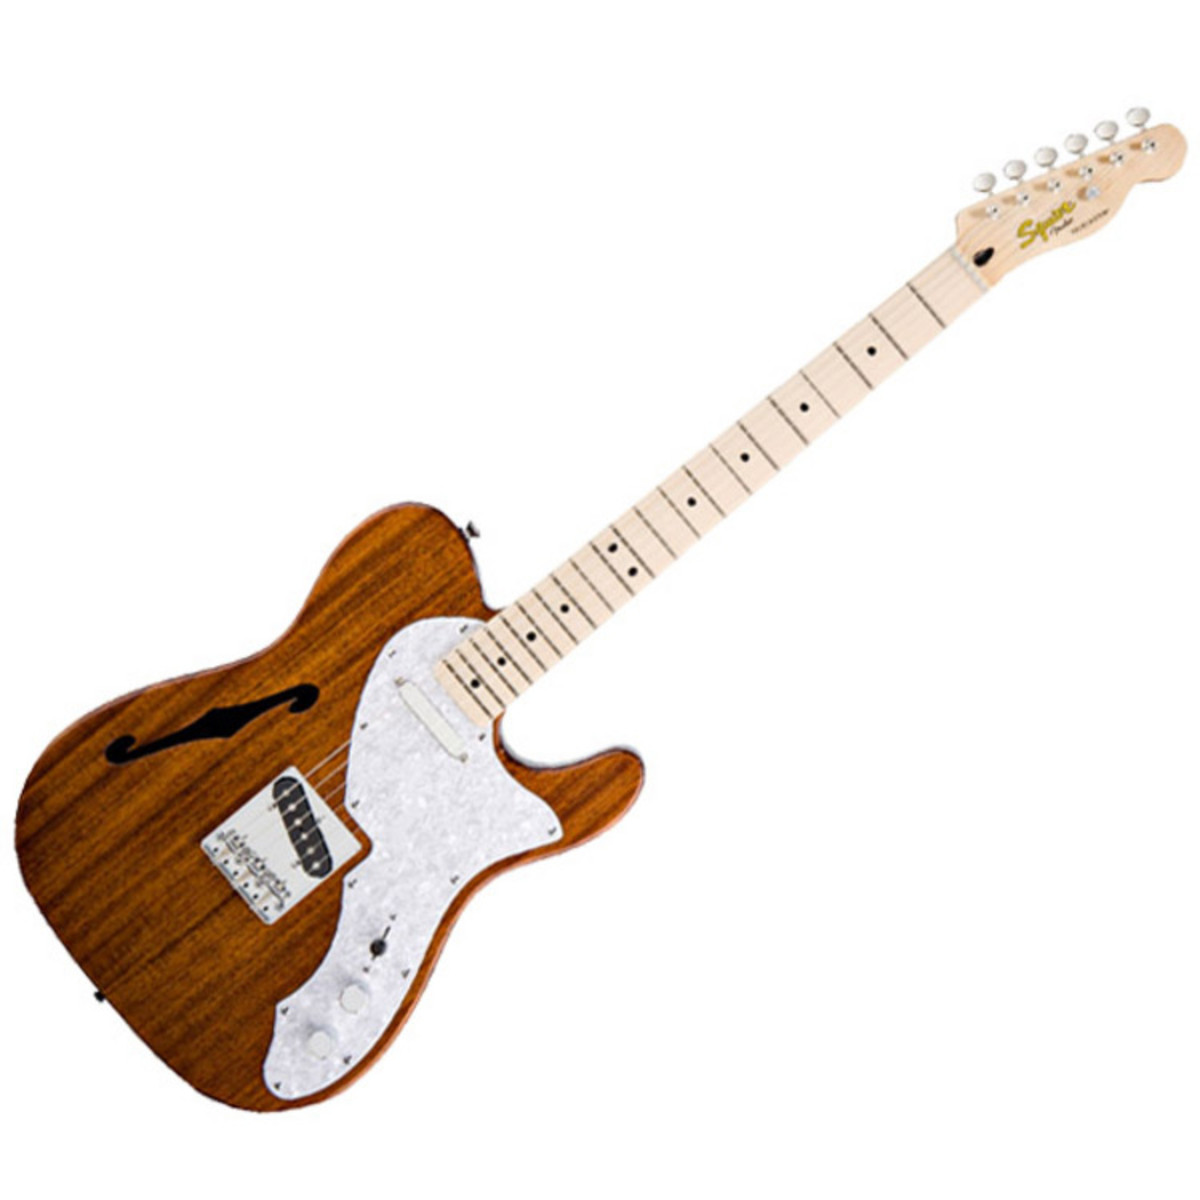 squier by fender classic vibe telecaster thinline natural at. Black Bedroom Furniture Sets. Home Design Ideas